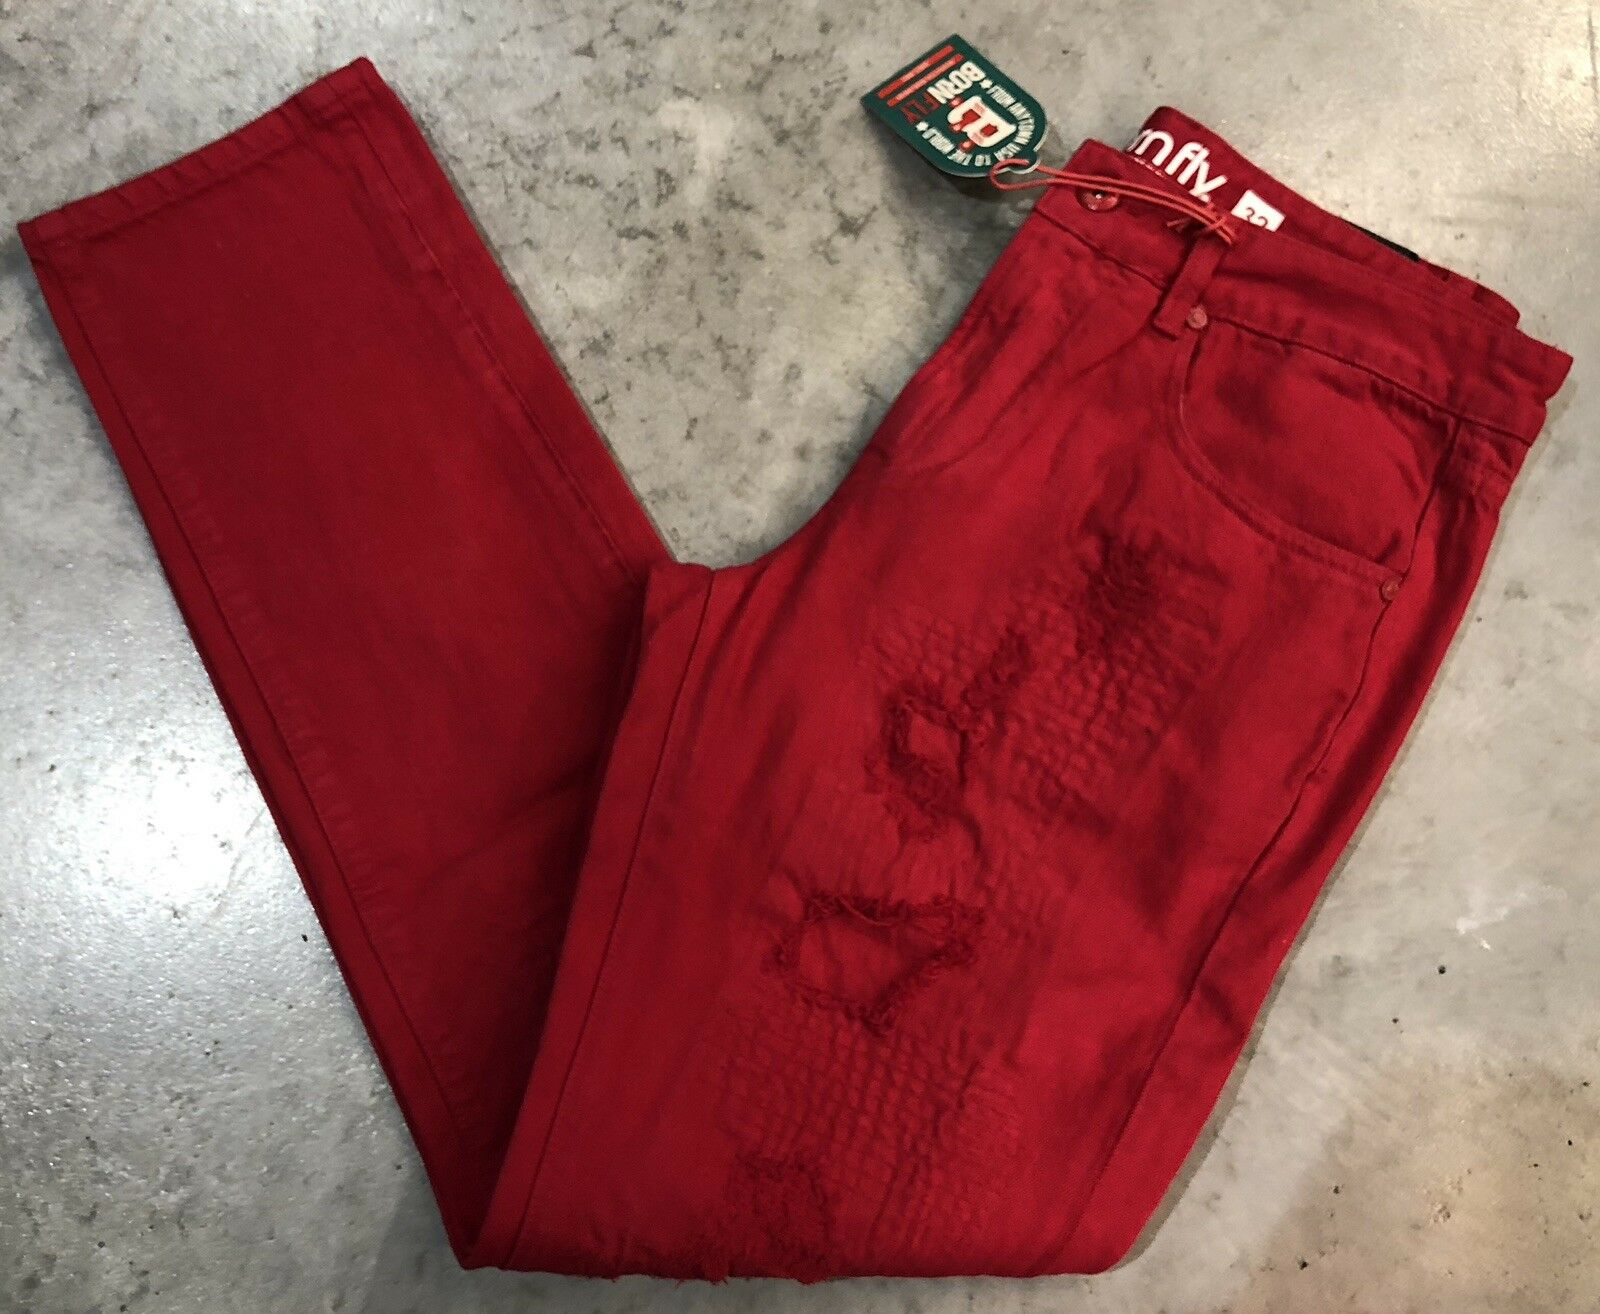 Born Fly True Straight Leg Red Jeans Sz. 32 NWT Retail   100% Authentic